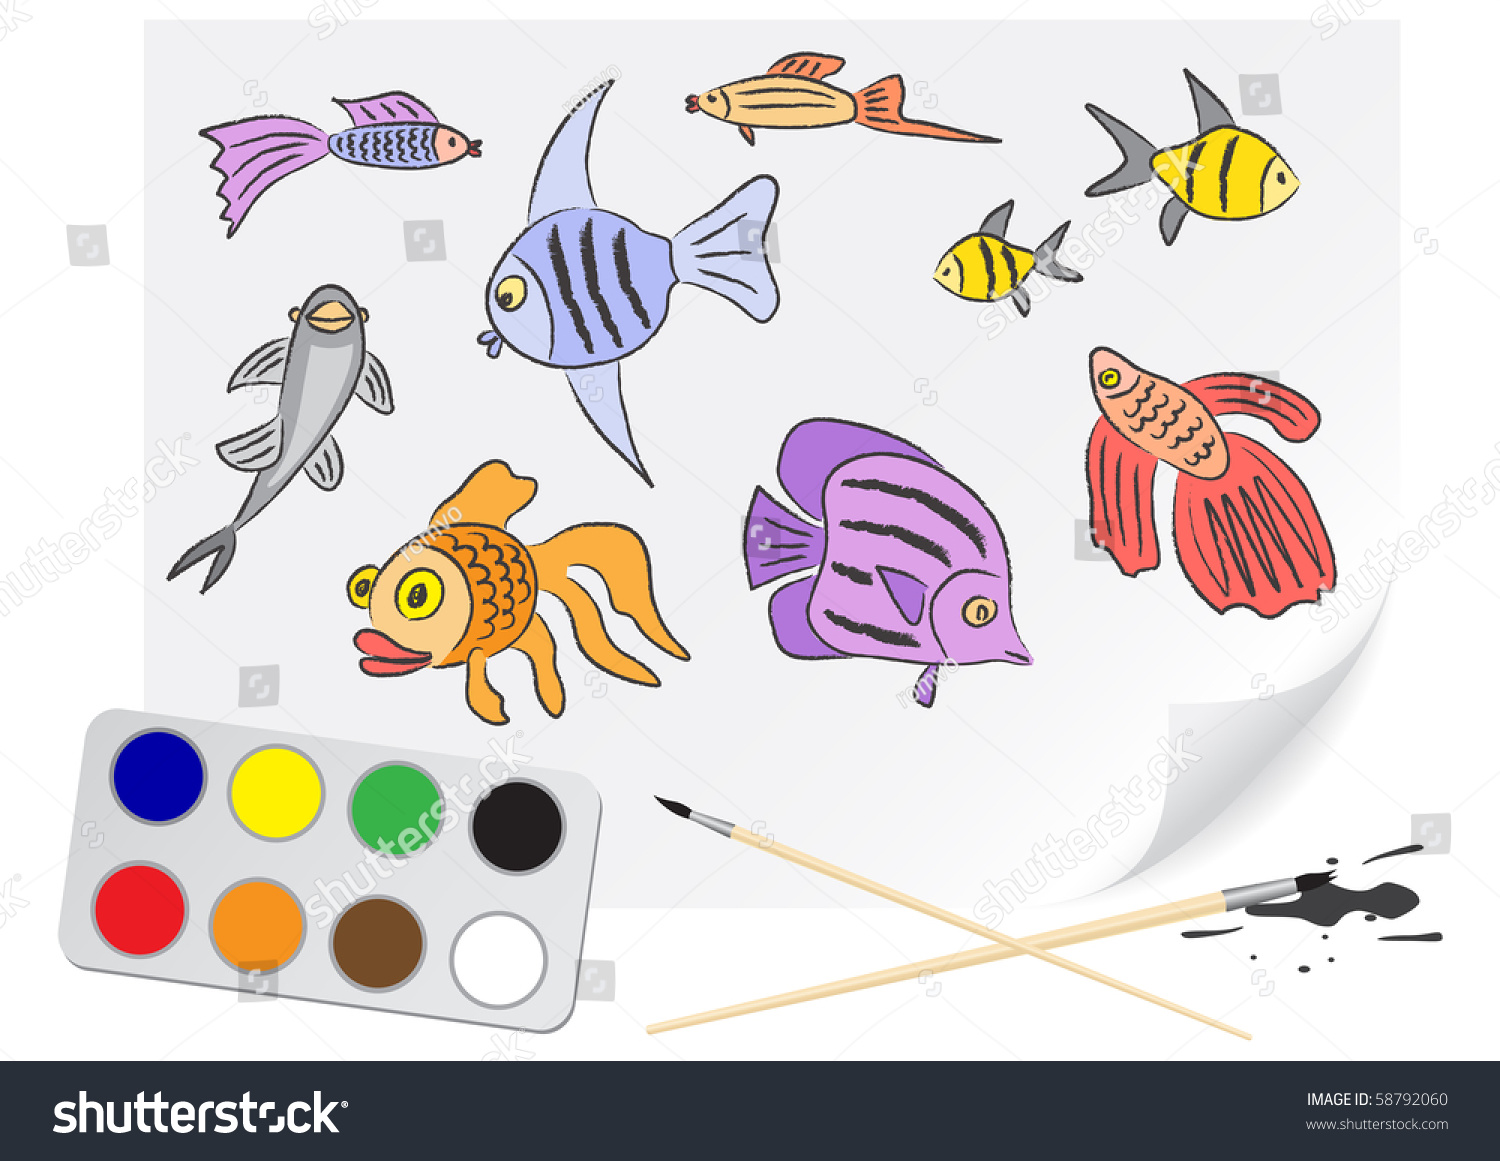 Fish tank drawing pictures - Children Drawing The Aquarium Fishes A Brush Paints On A Paper